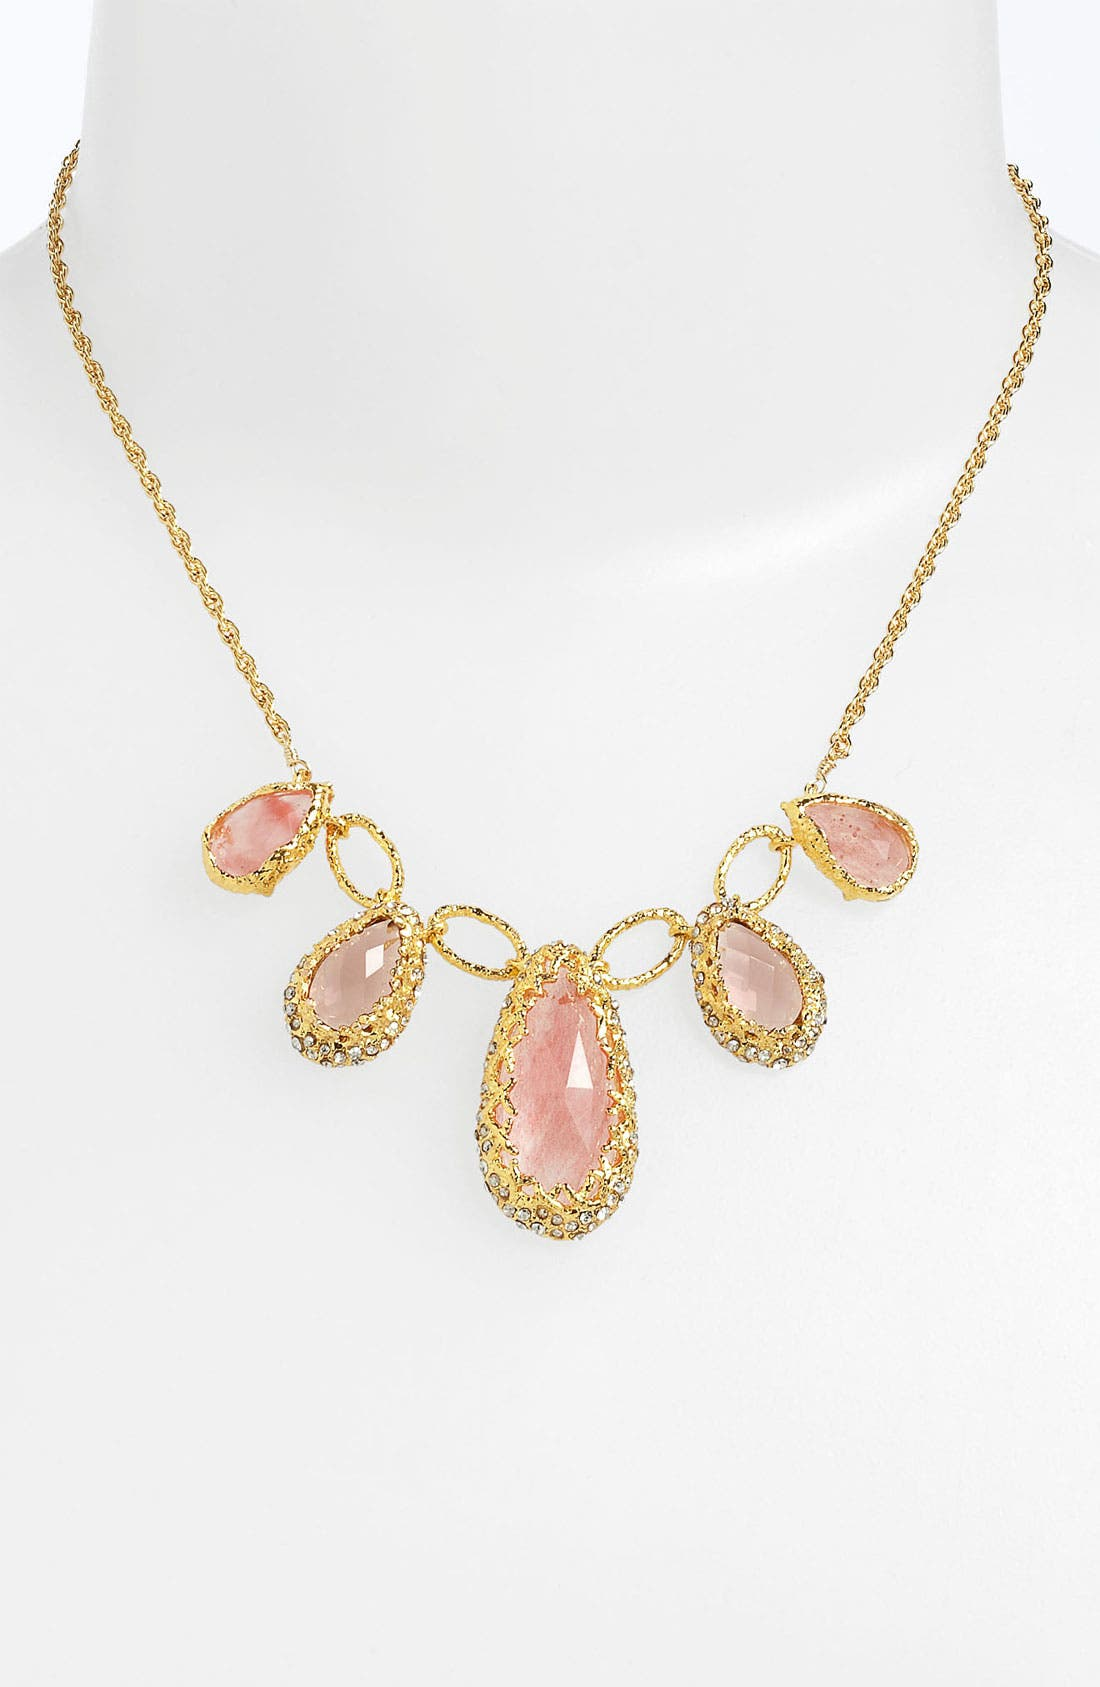 Alternate Image 1 Selected - Alexis Bittar 'Elements - Floral' Frontal Necklace